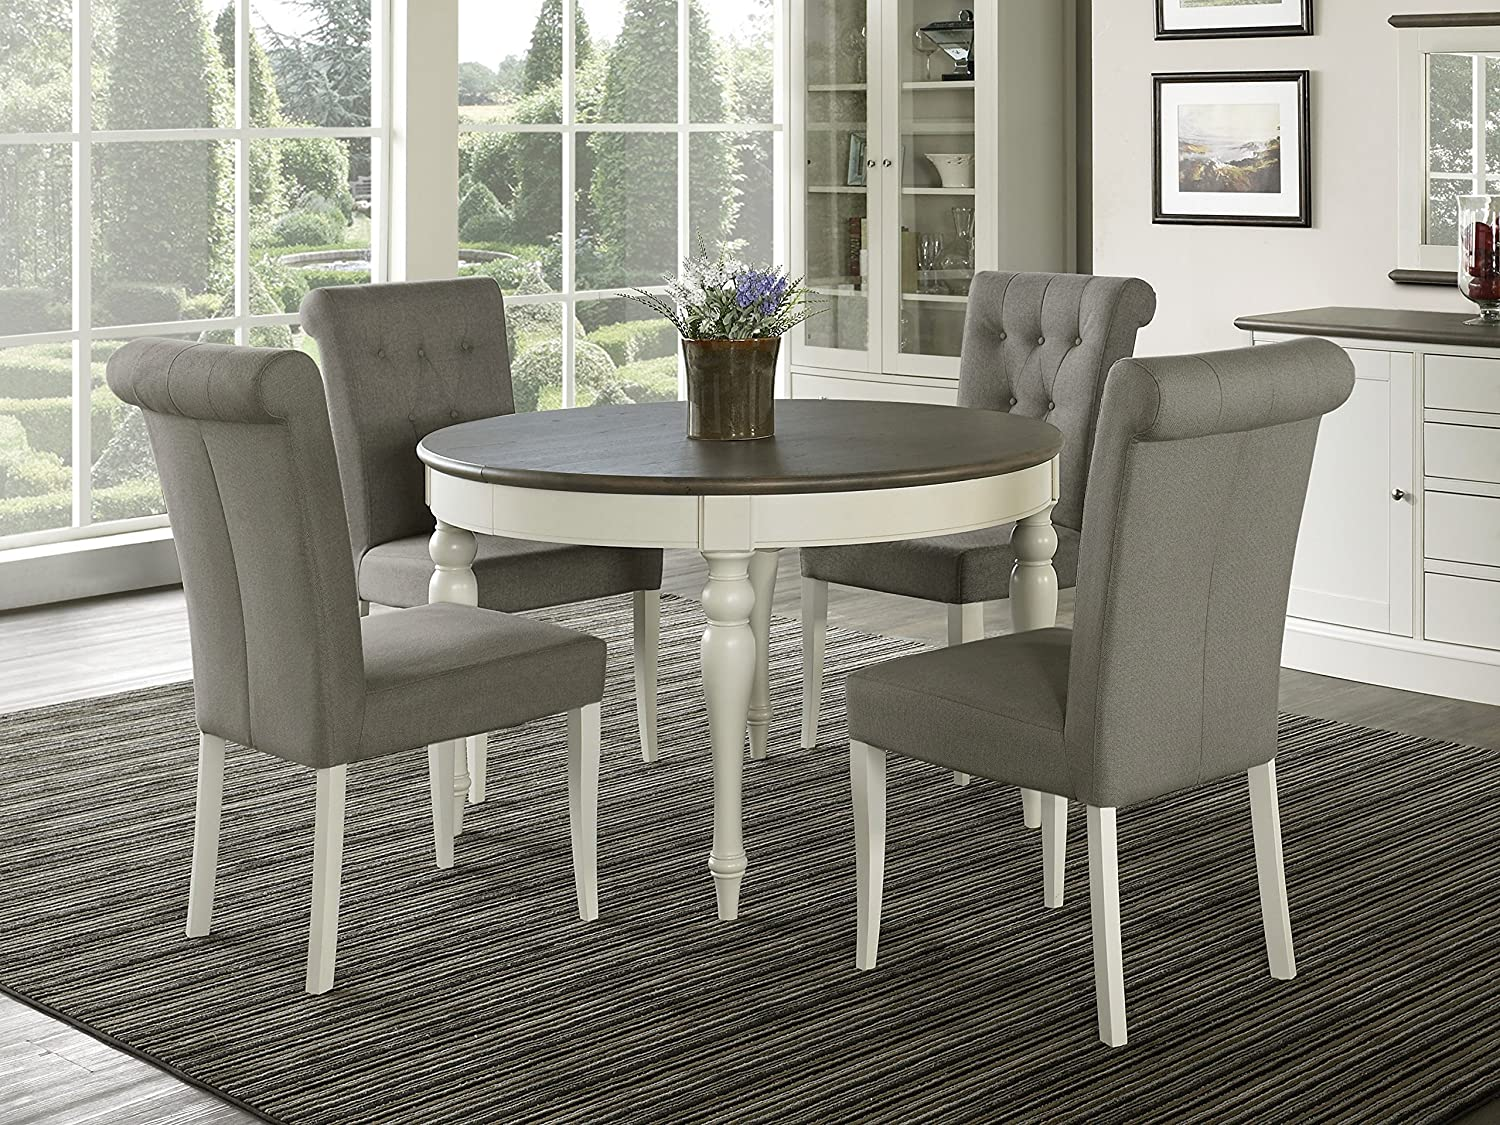 Everhome Designs – Vegas 5 Piece Round To Oval Extension Dining Table Set for 4 Parsons Chairs